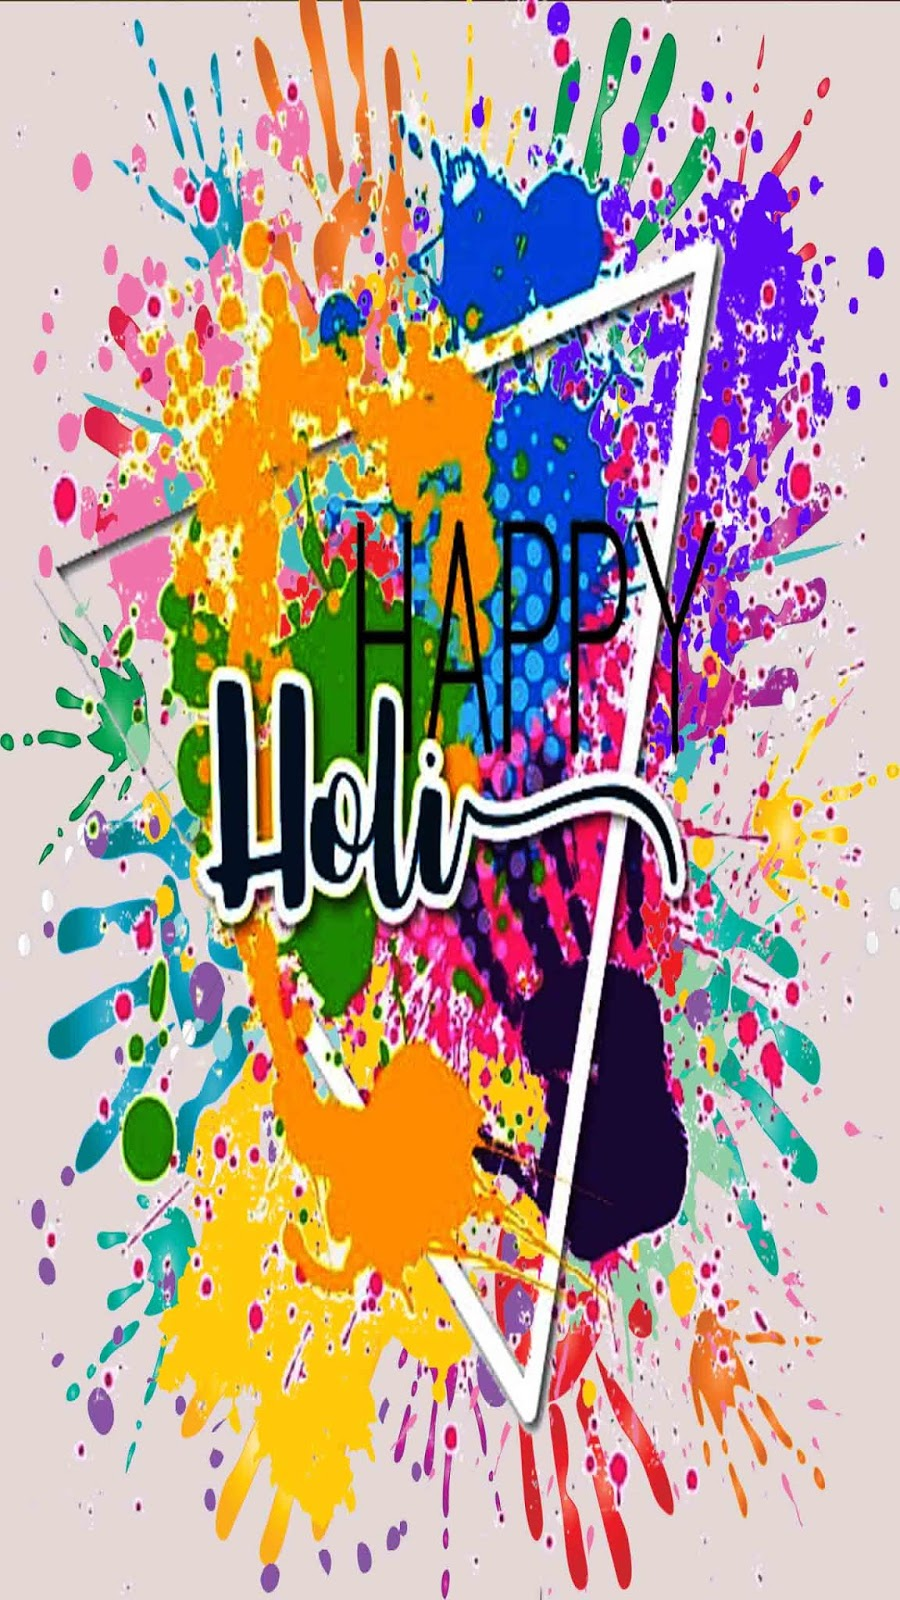 hd-happy-holi-wallpapers